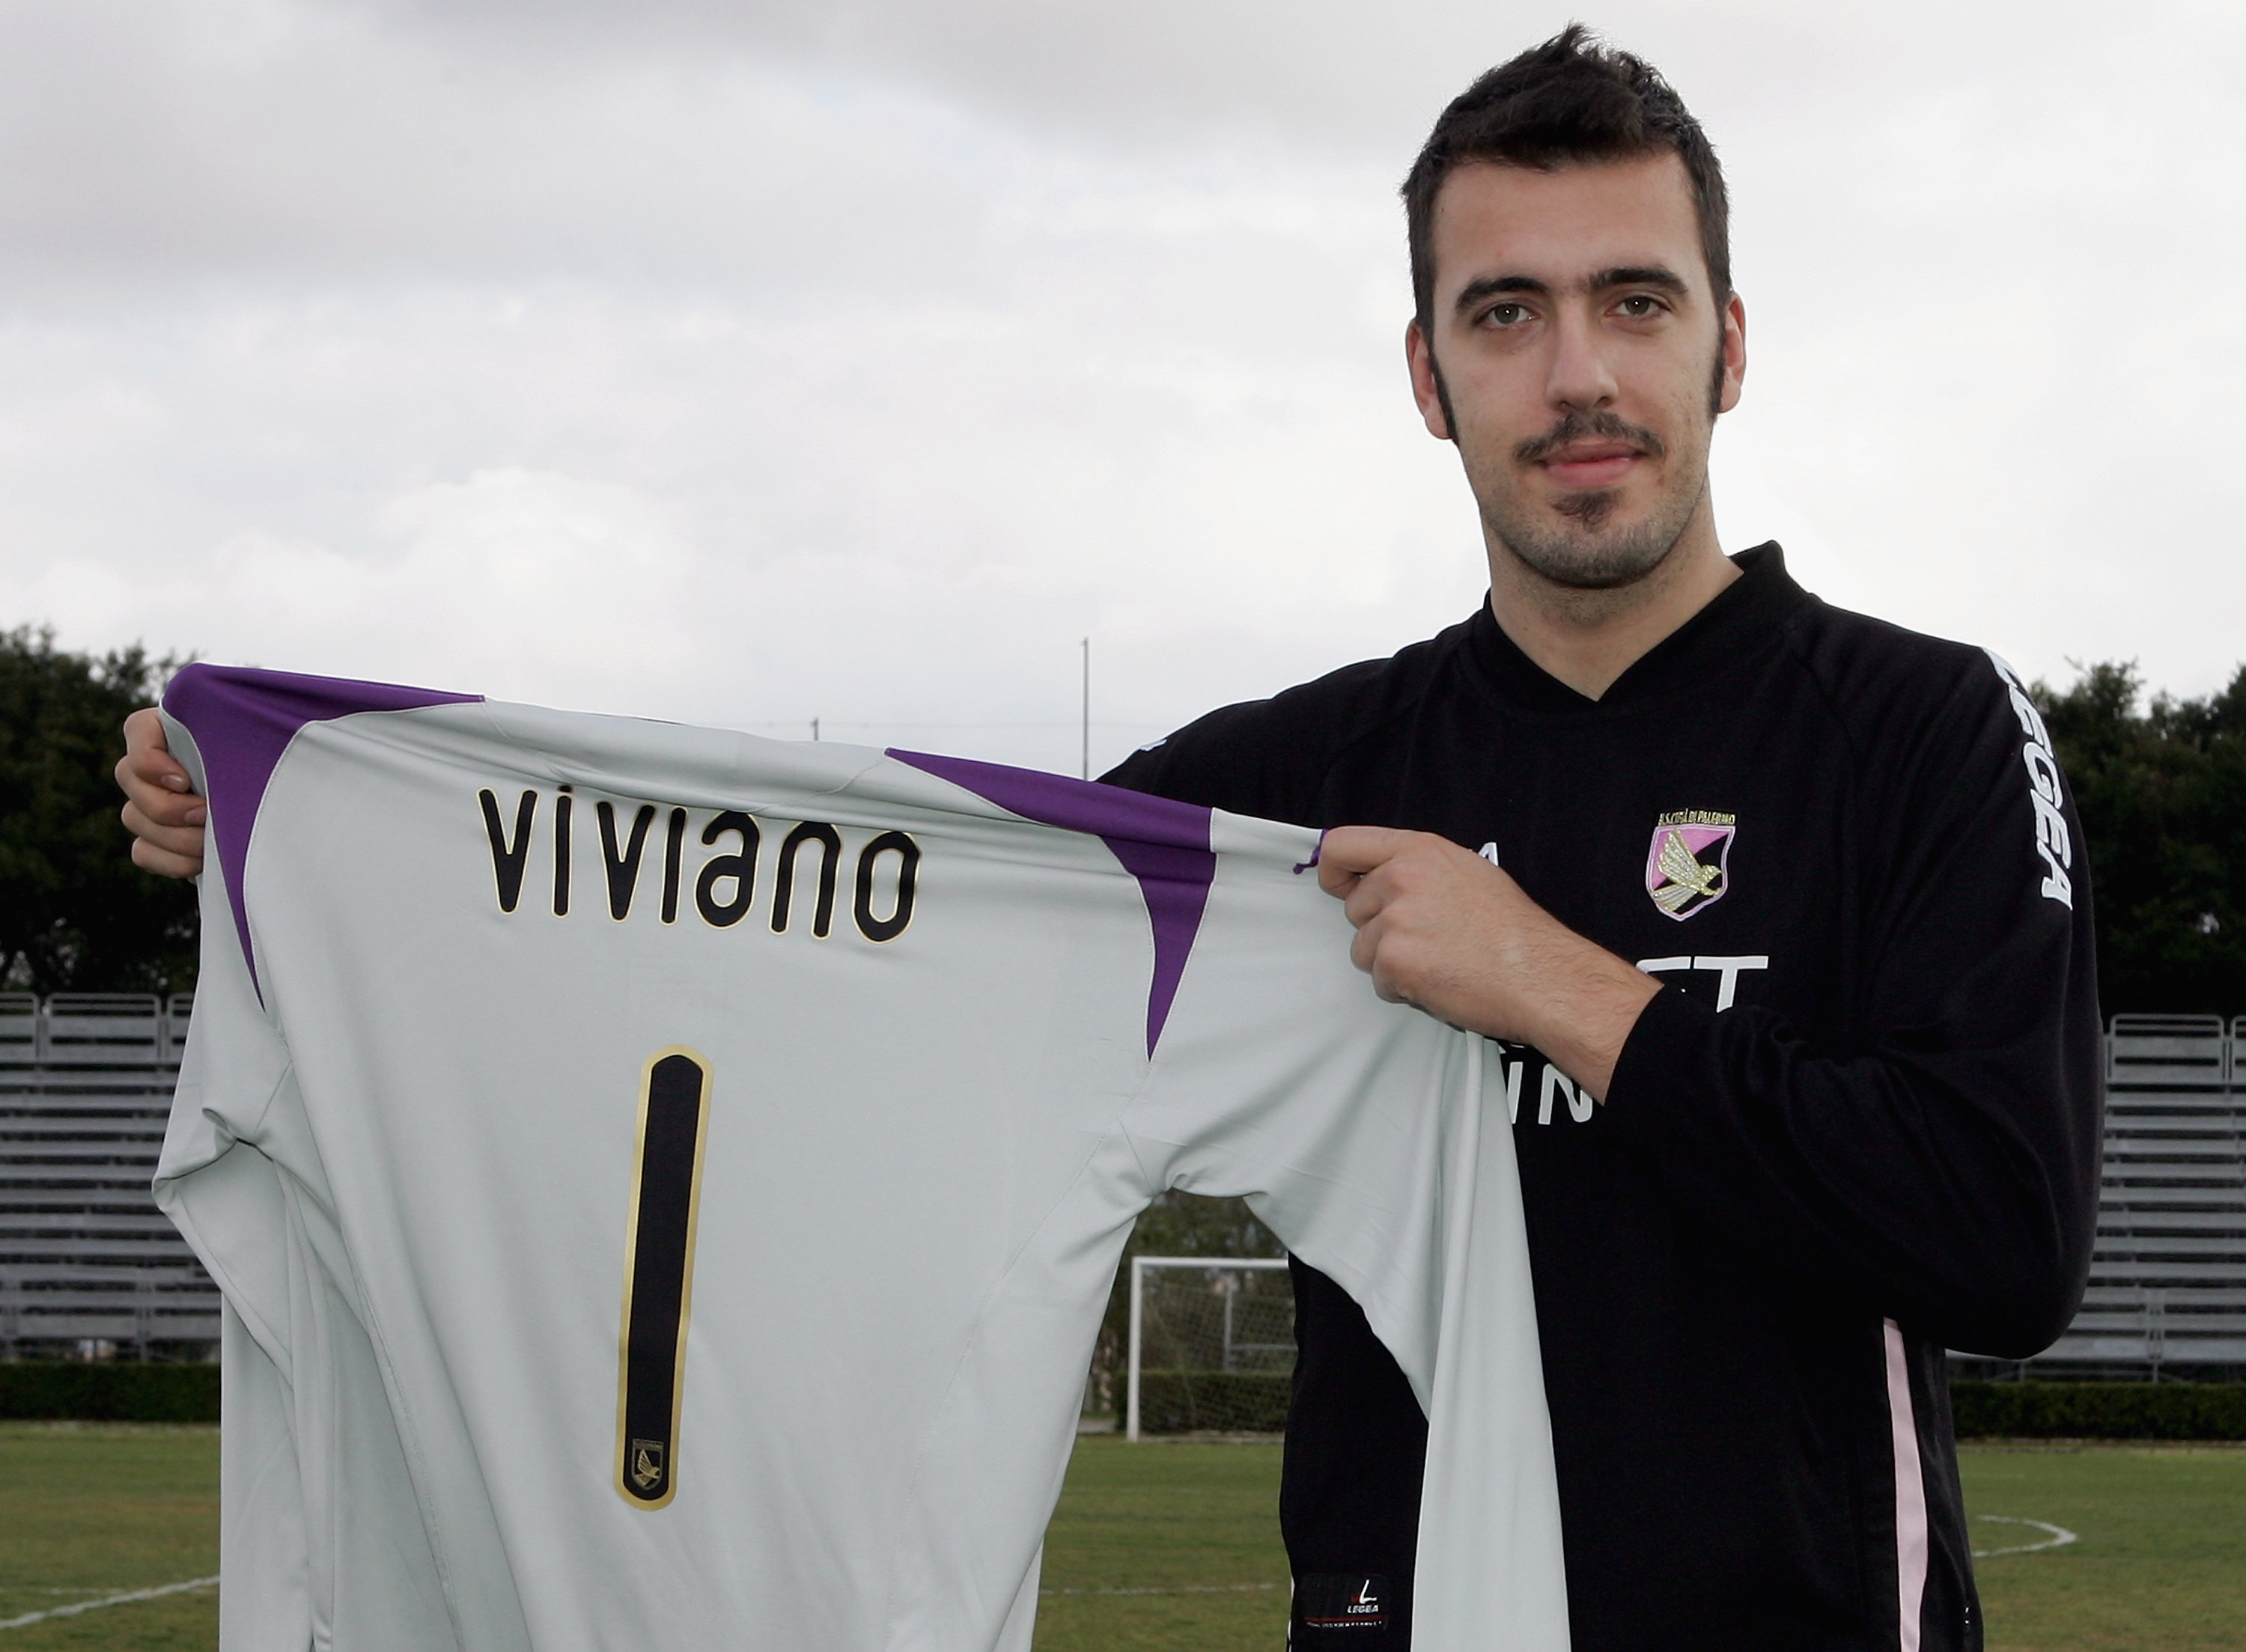 Jersey boy: Viviano when he was unveiled by Palermo last January (Picture: Getty)